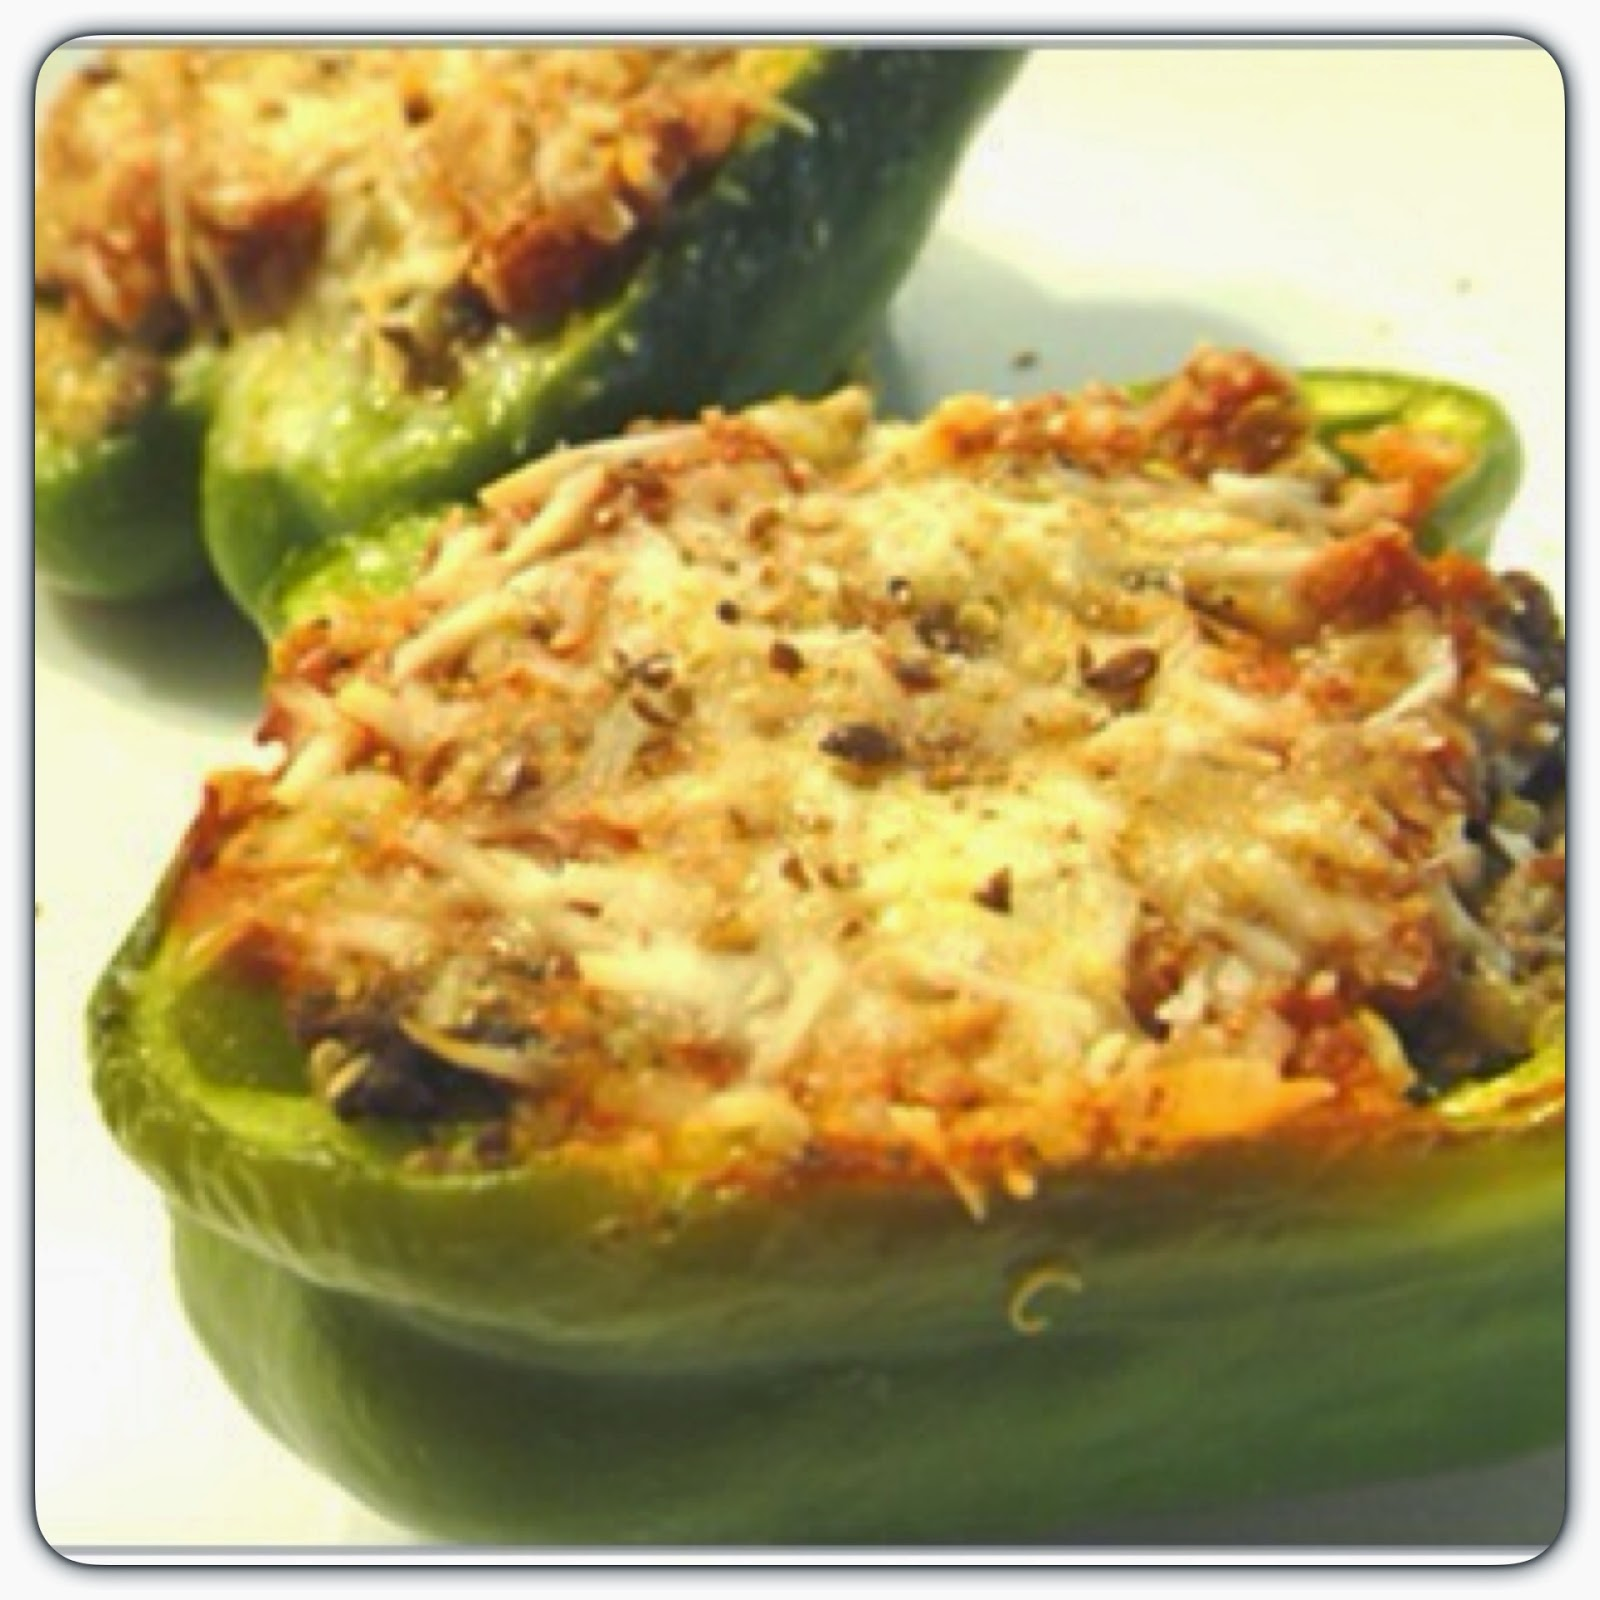 Ground beef recipes w/ peppers